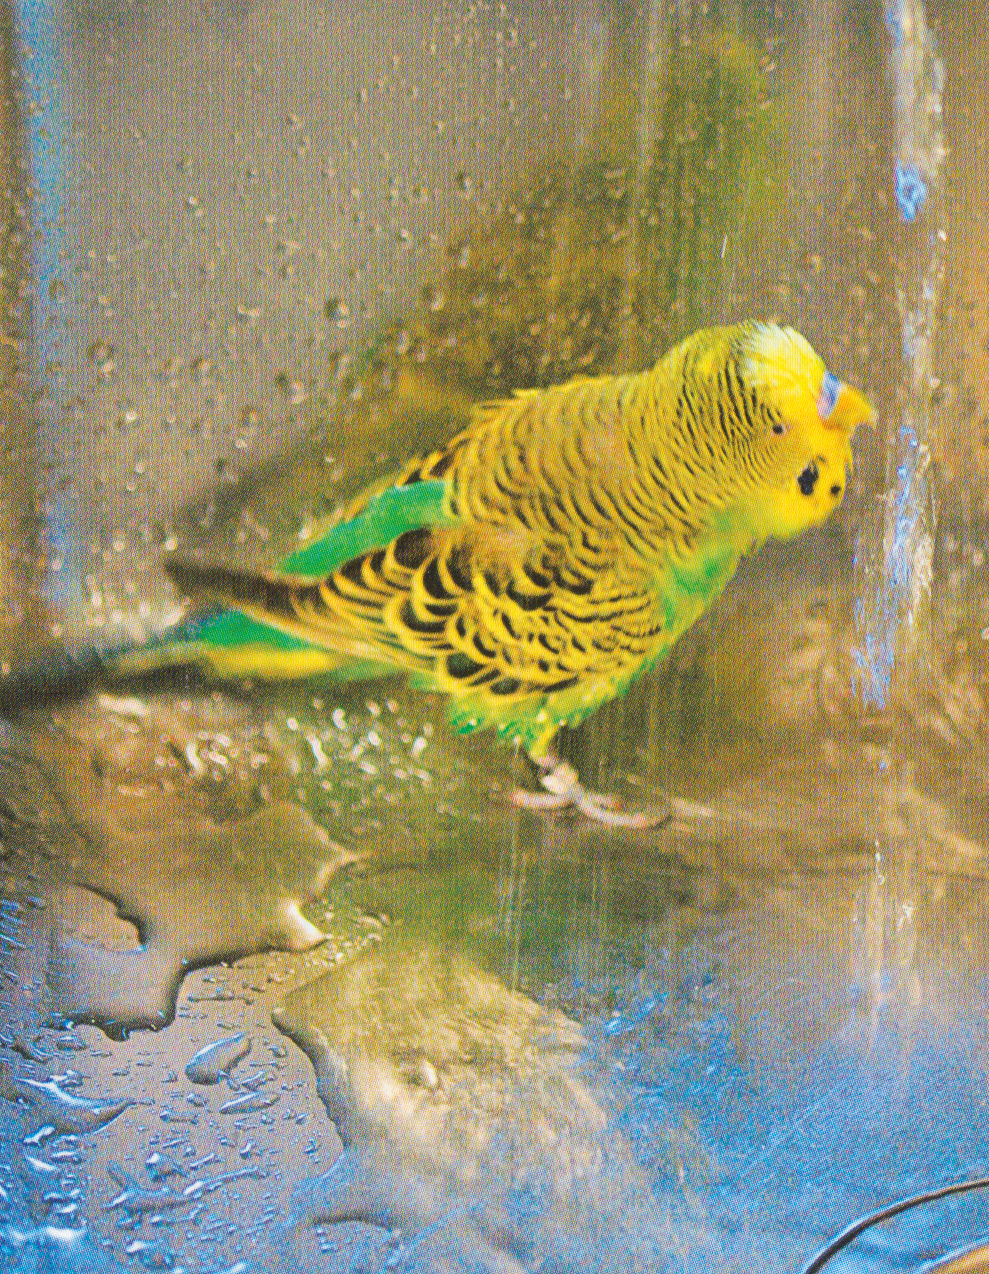 Room Temperature For Budgies